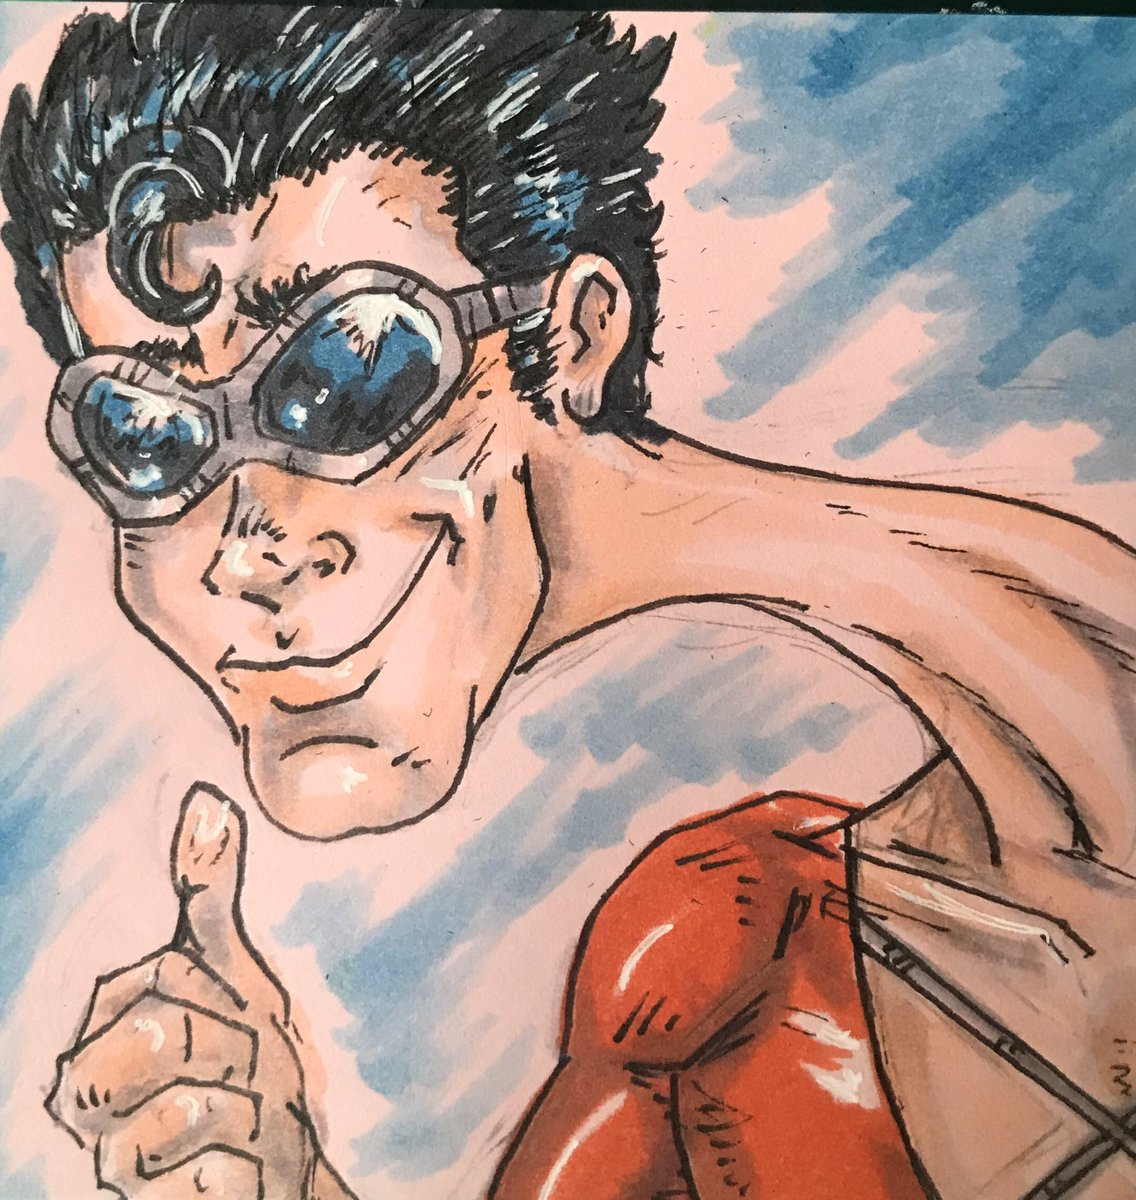 Today's Post-It doodle is Plastic Man. Drawn for today's @toddnauck art challenge.   Pencil, ink and marker on a pink Post-It Note.  #toddnauckartchallenge #postitpopart #comics #comicart #art #plasticman #Dc #dccomics